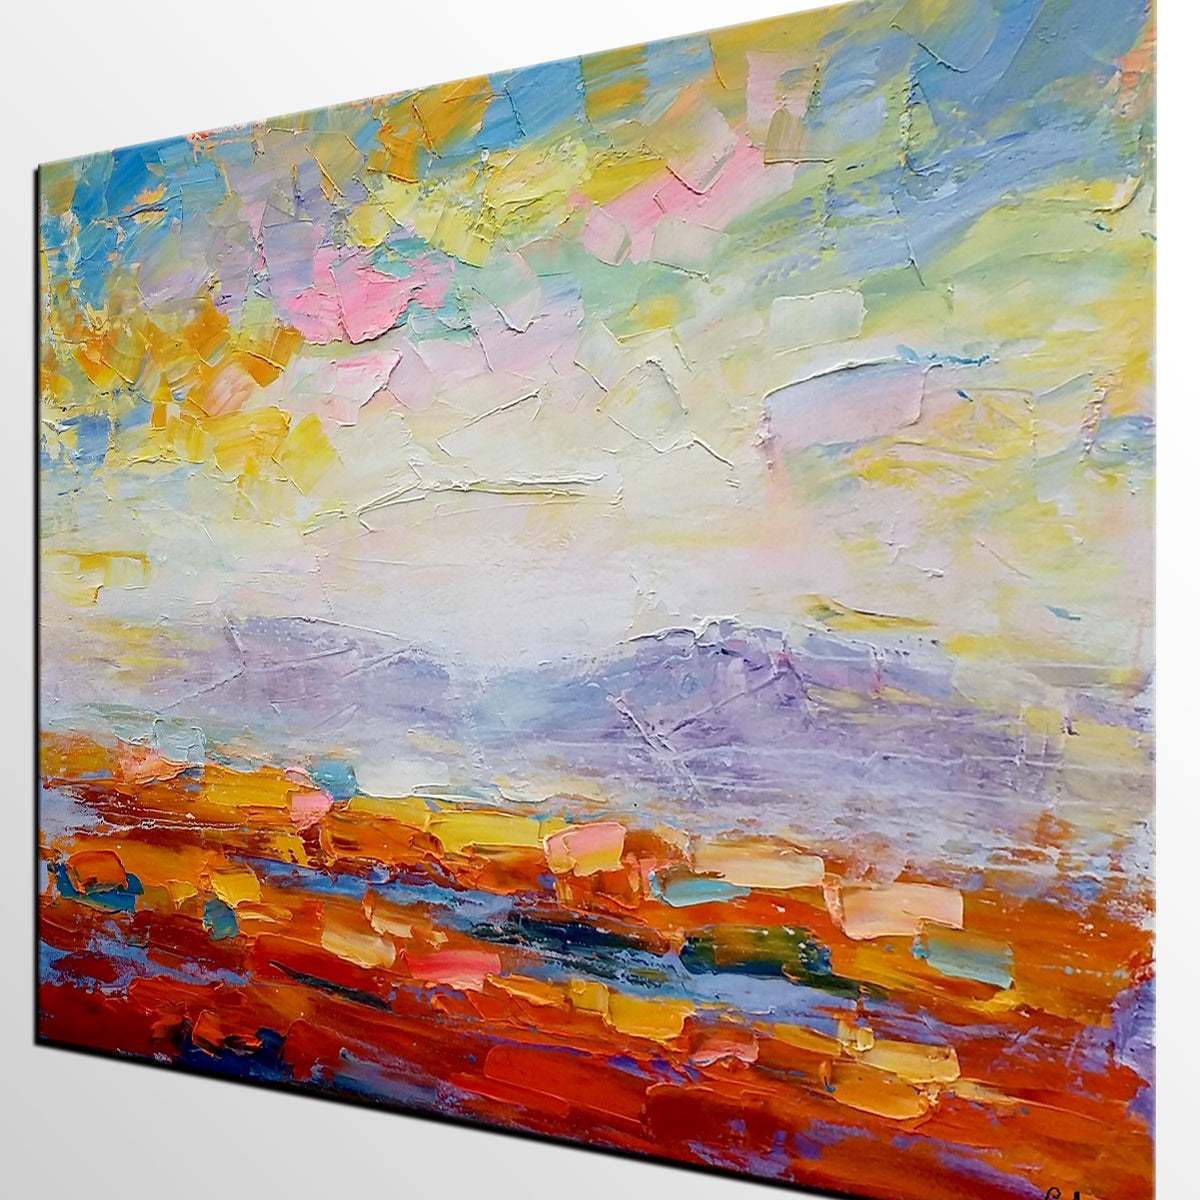 Abstract Painting, Original Wall Art, Abstract Landscape Art, Large Art, Canvas Art, Wall Art, Oil Painting, Canvas Painting, Oil Painting 242